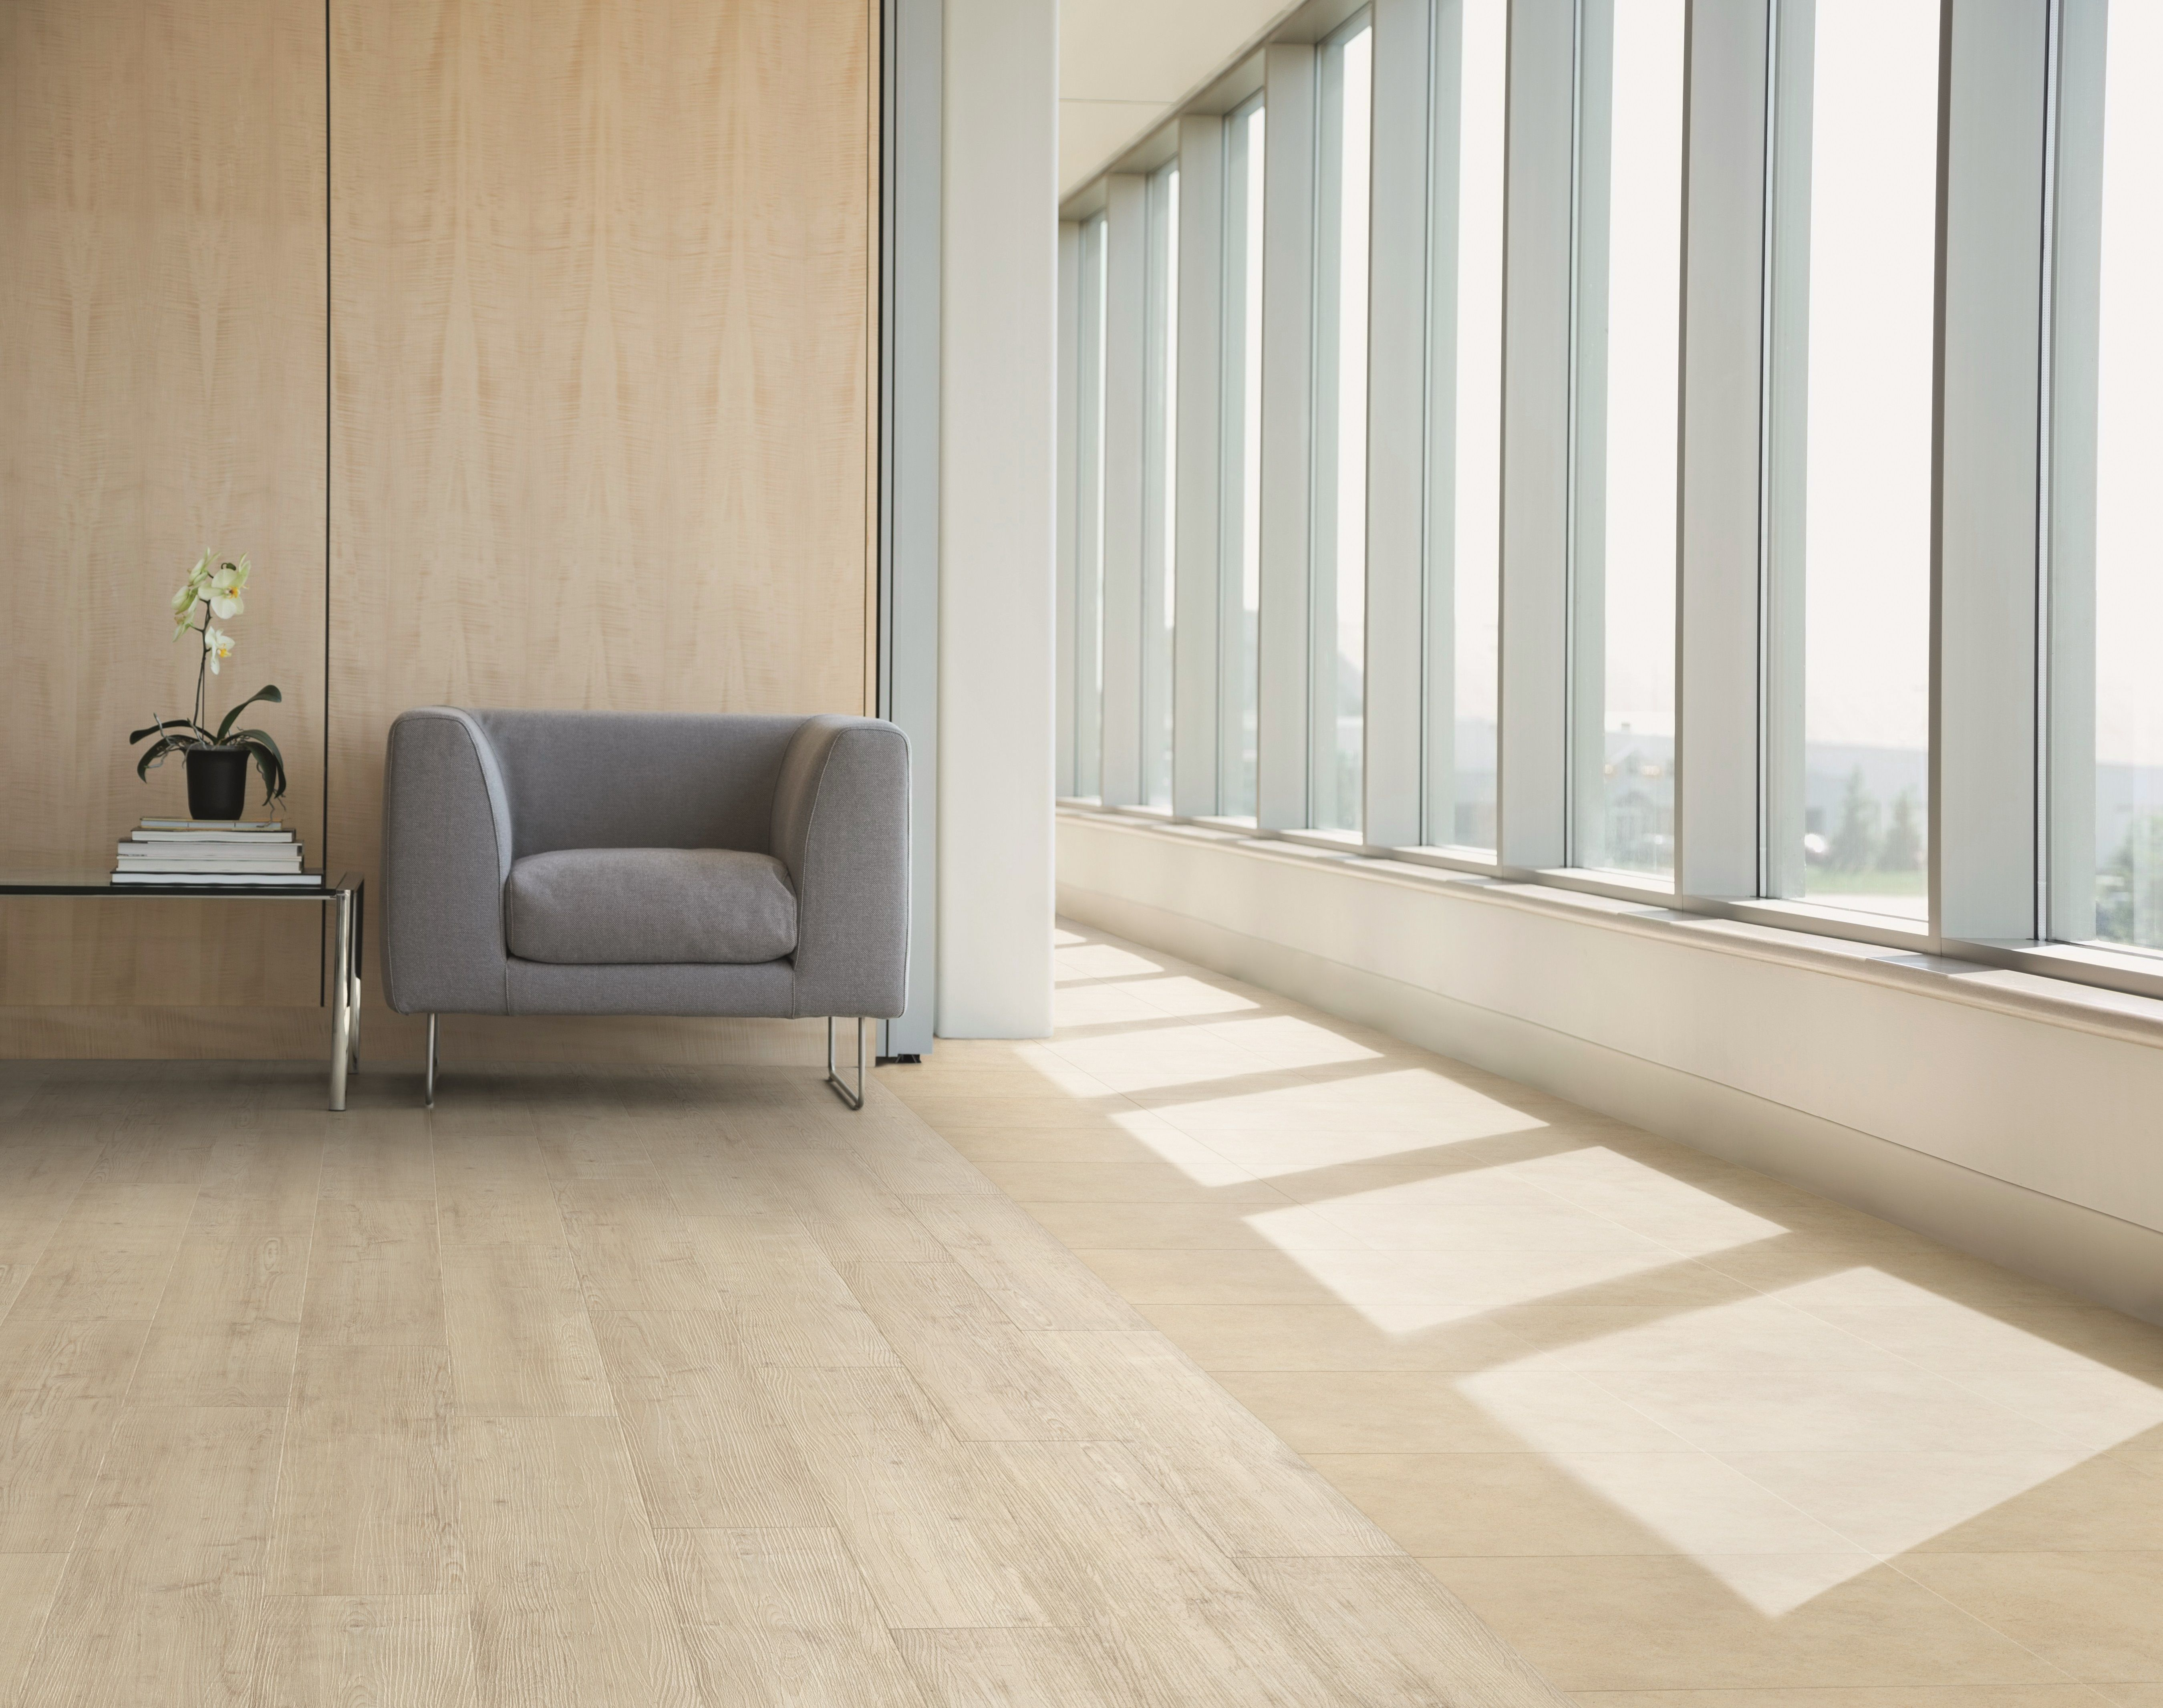 Fusion Flooring 1060 Royal White Oak light and spacious